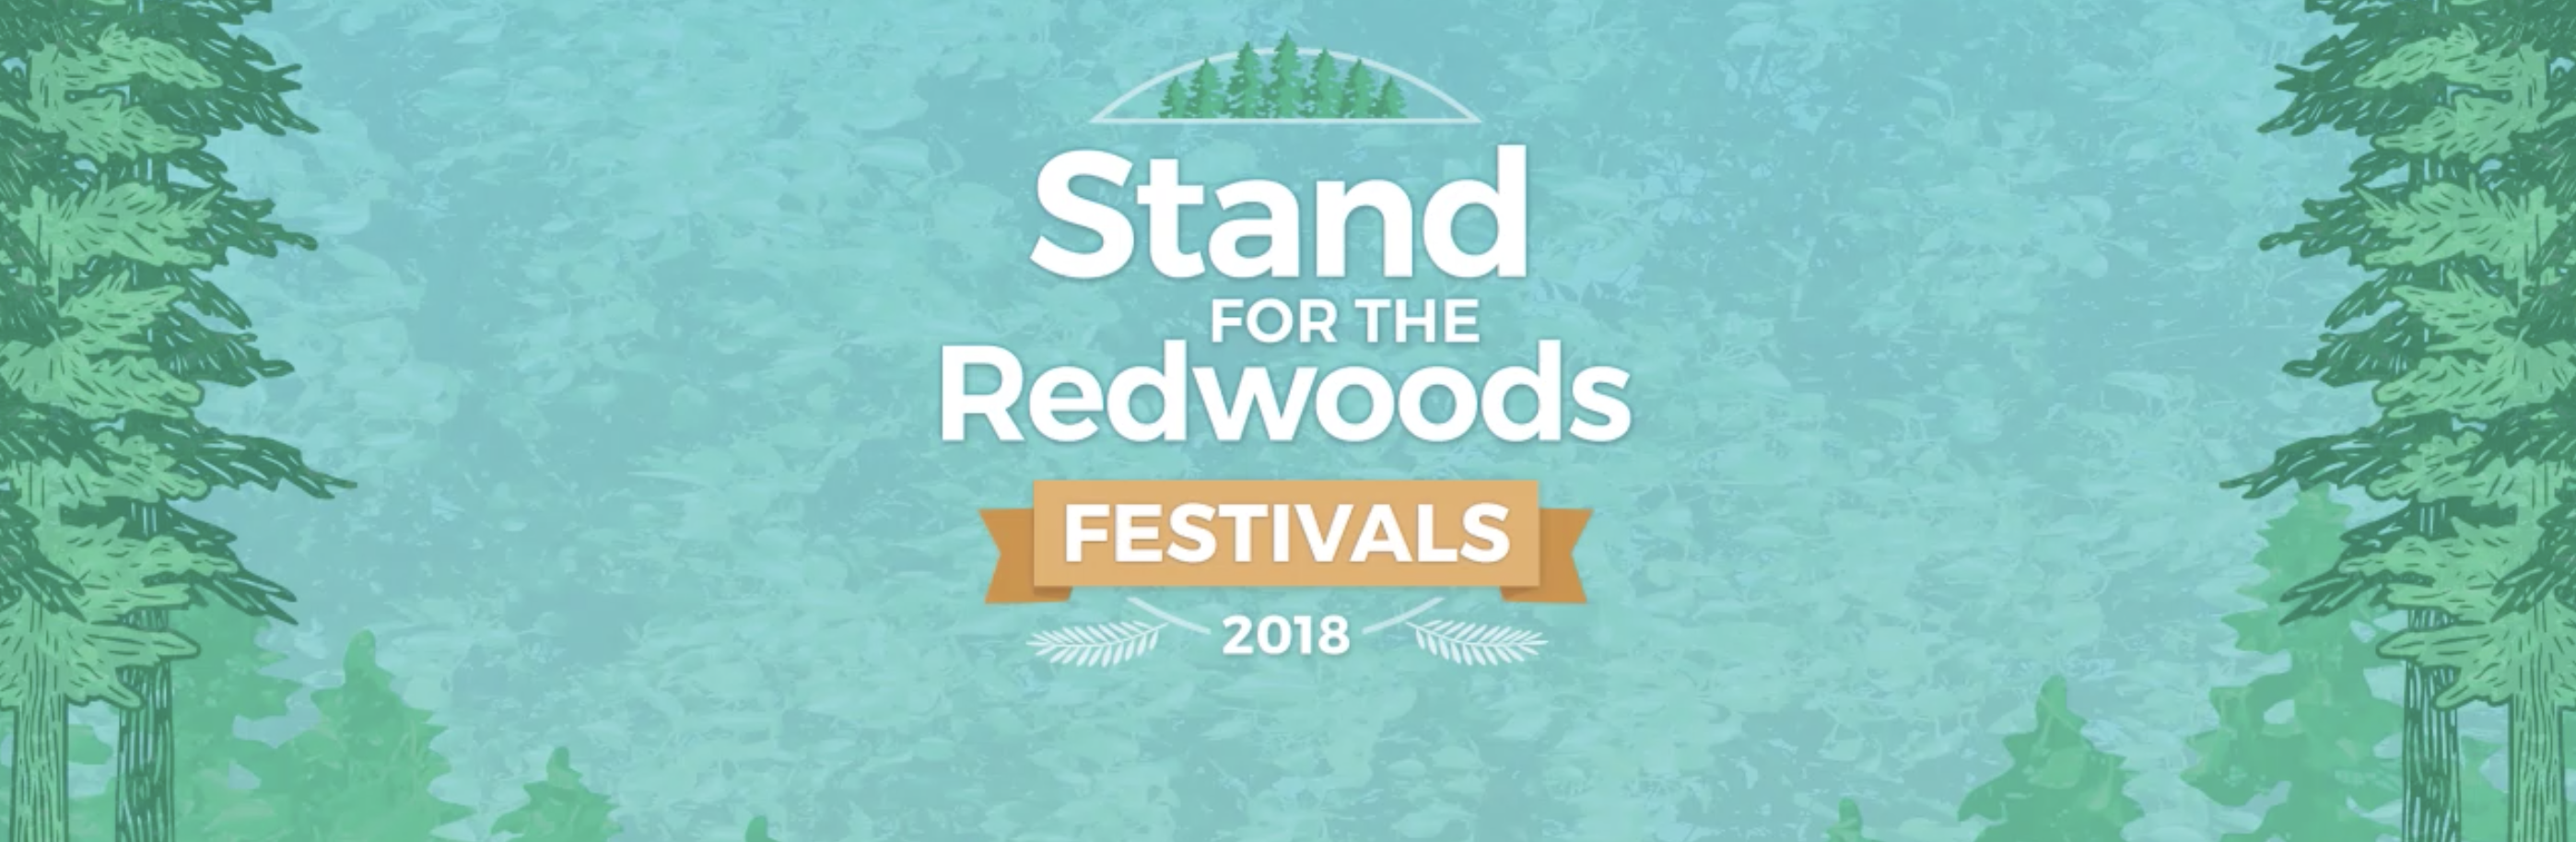 100 Years of Protecting the Redwoods